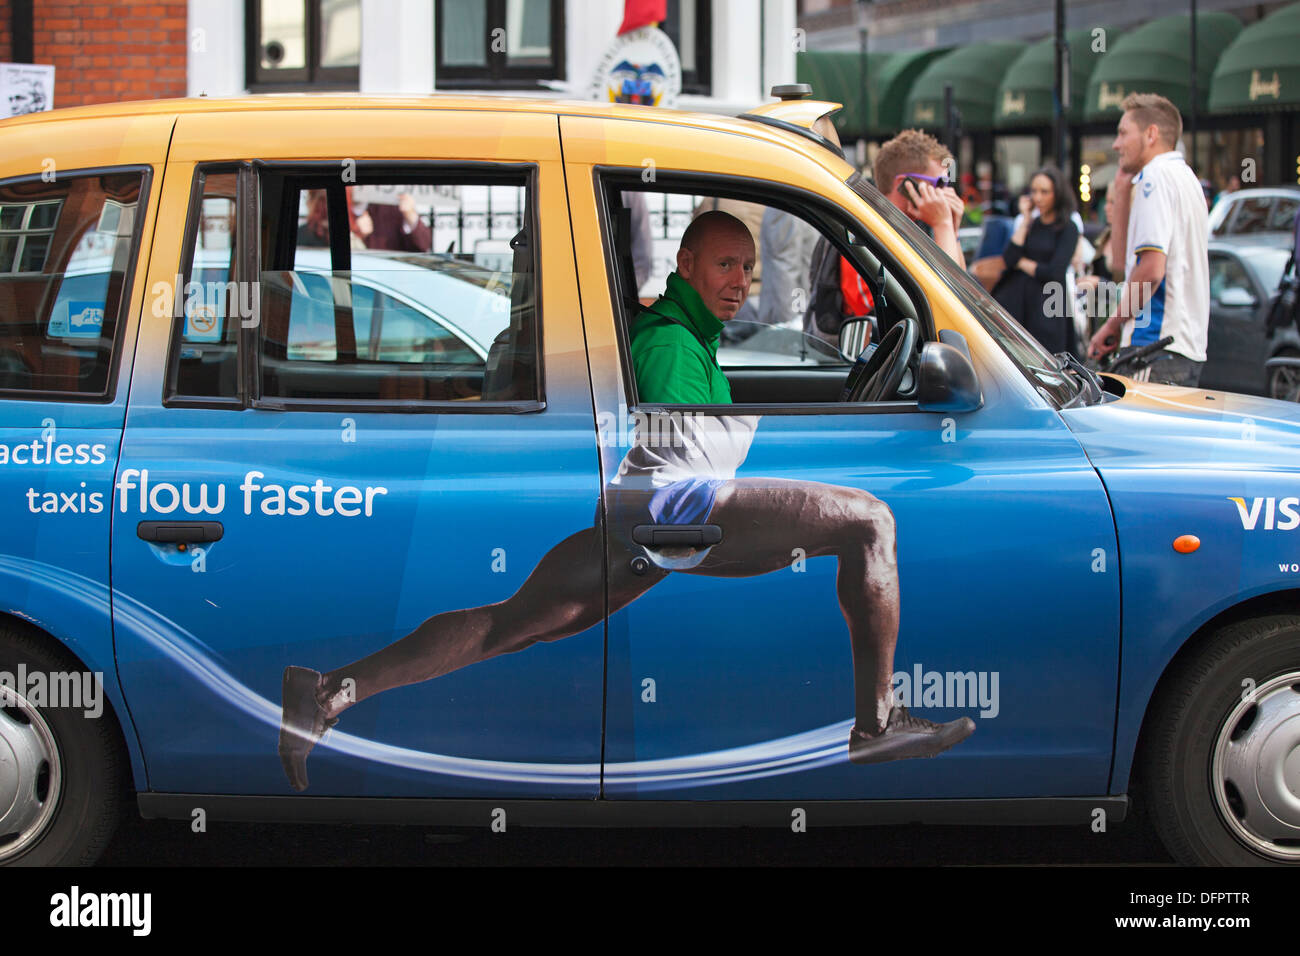 Hackney cab with Barclays advertisement on the side, London, UK - Stock Image